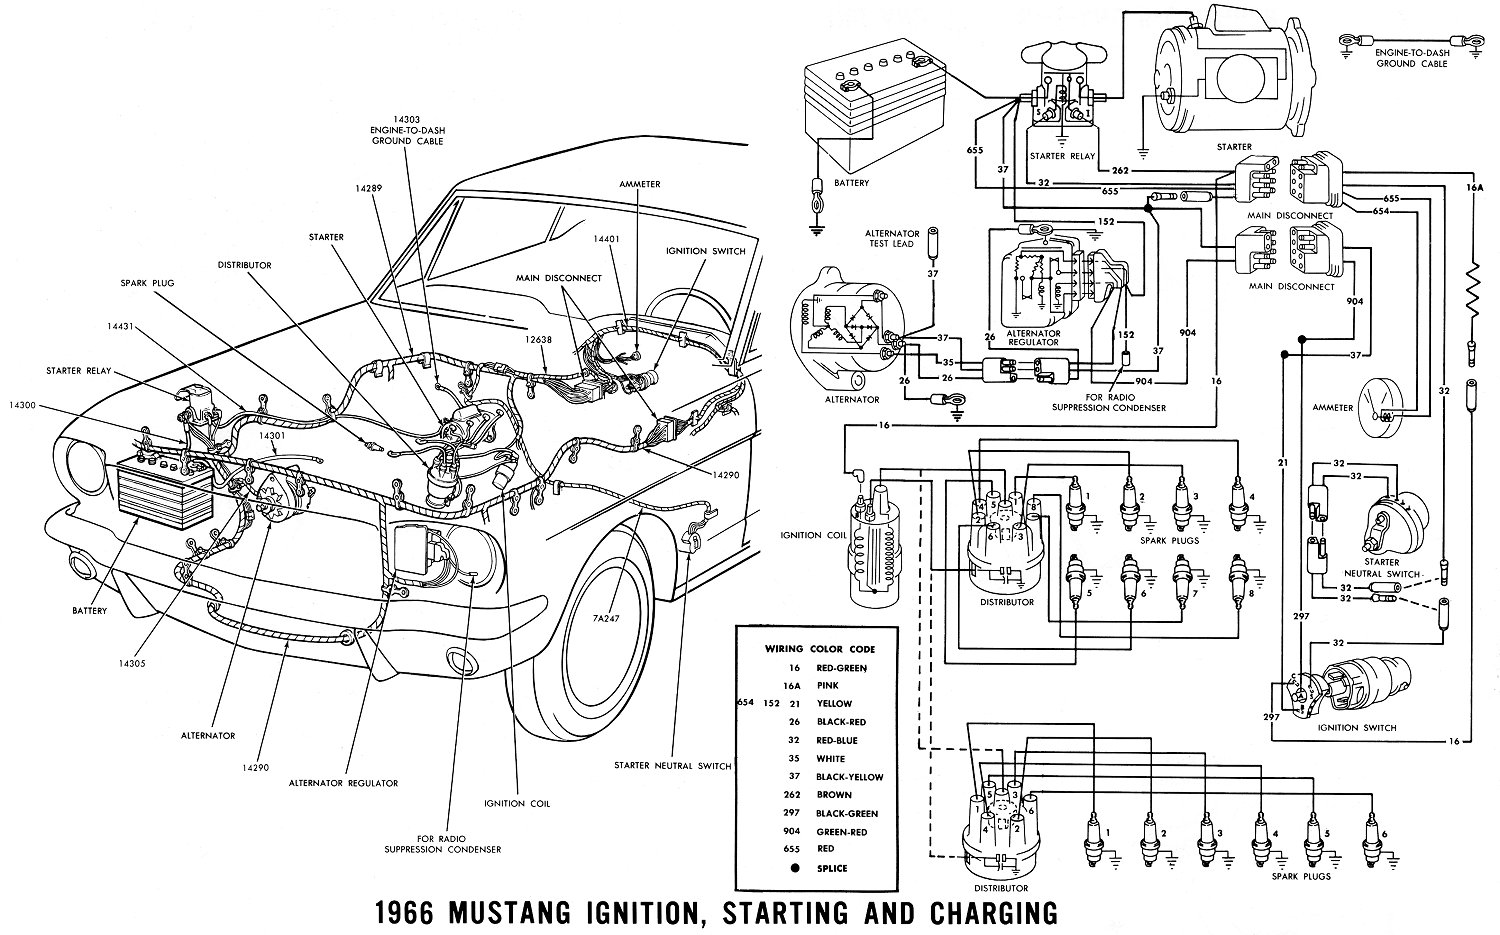 ignition switch wiring diagram moreover 1965 ford mustang  ignition  free engine image for user